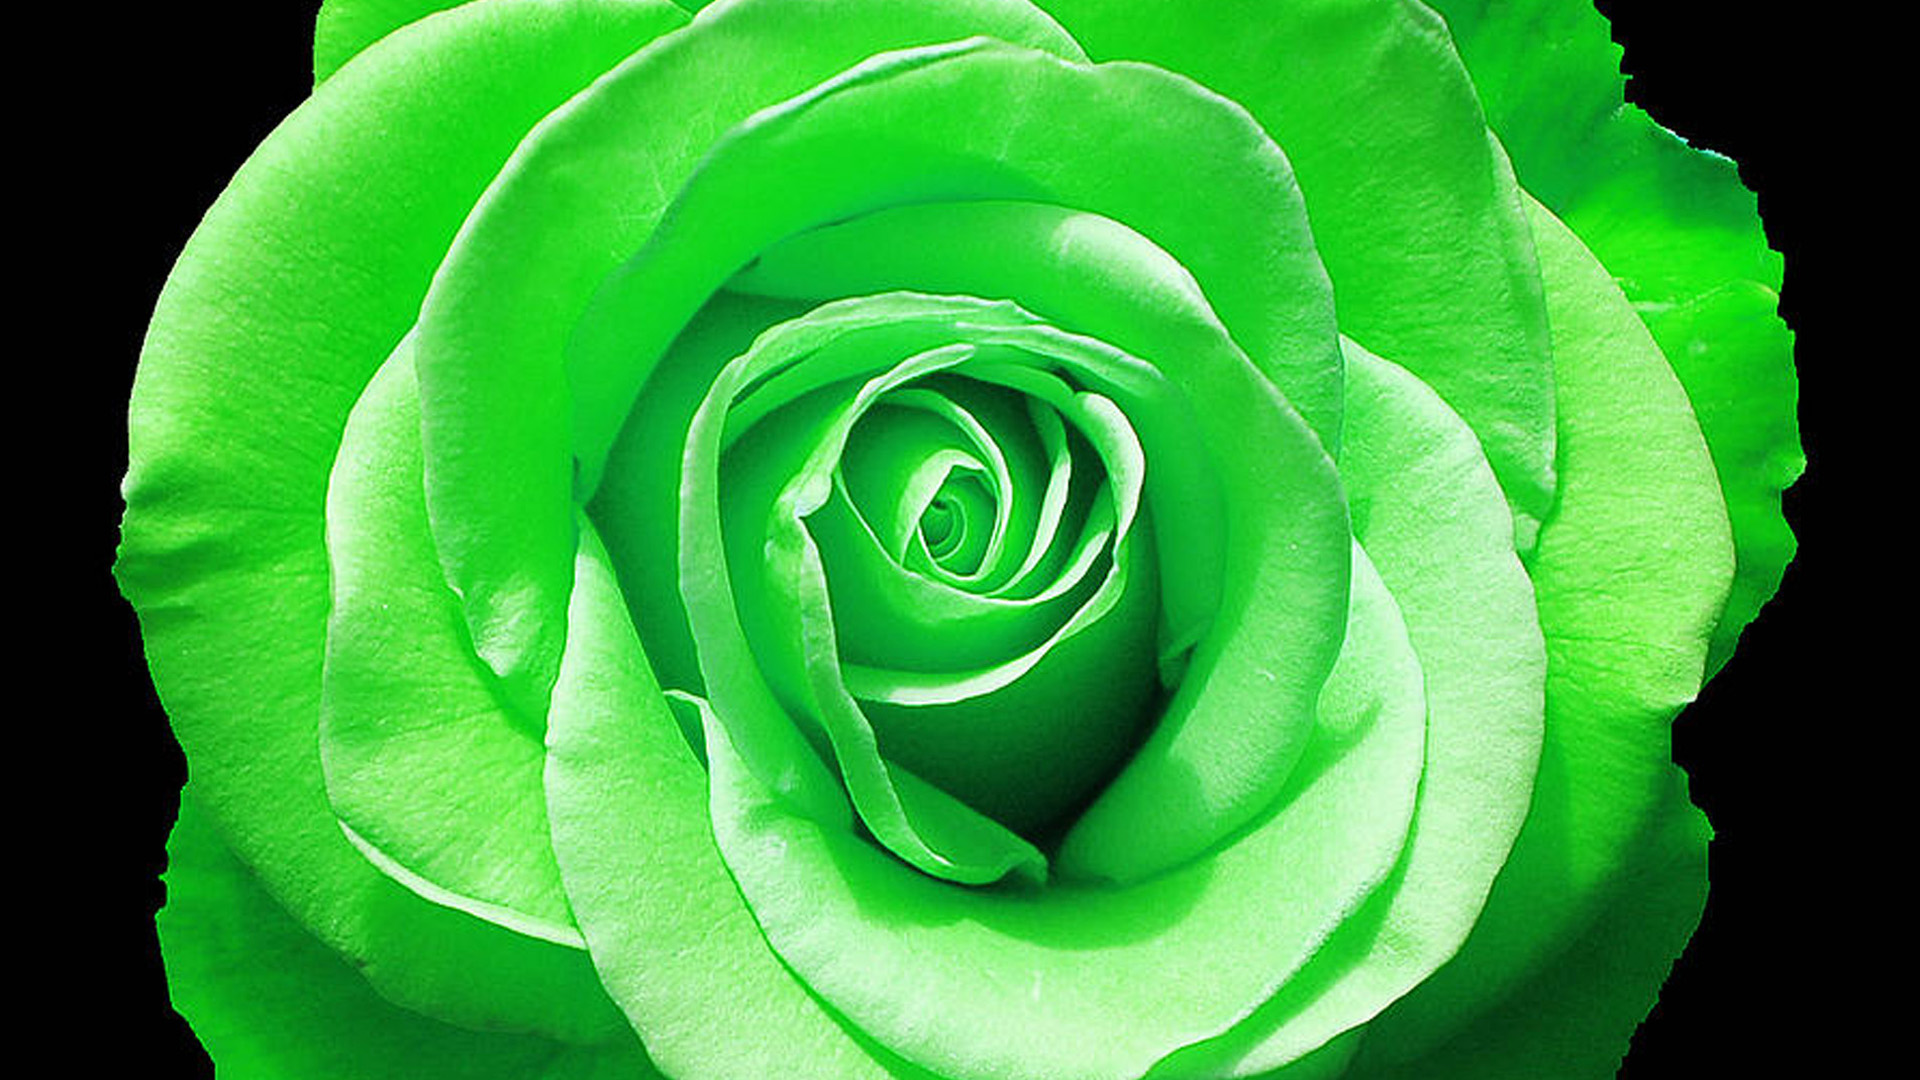 green rose black background - photo #14